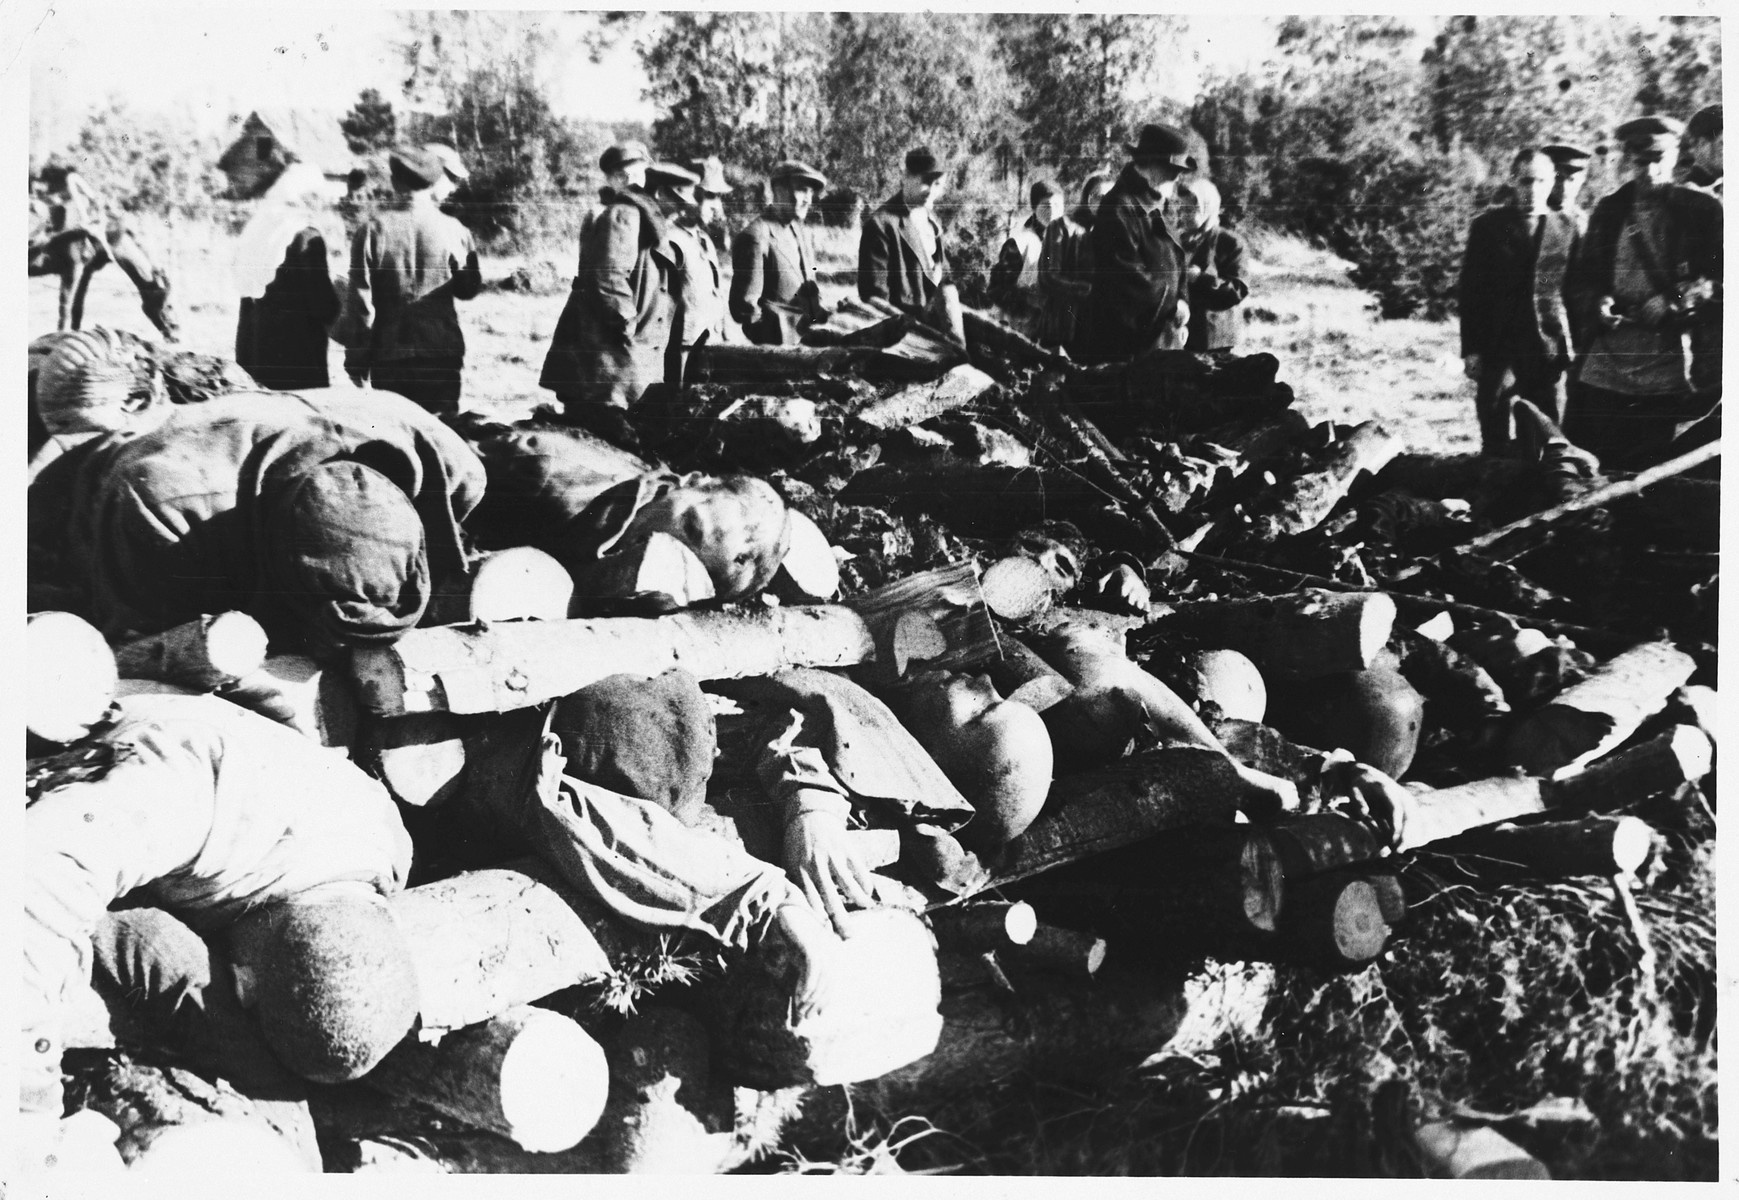 Soviet soldiers observe recently burned corpses on the grounds of the Klooga concentration camp.